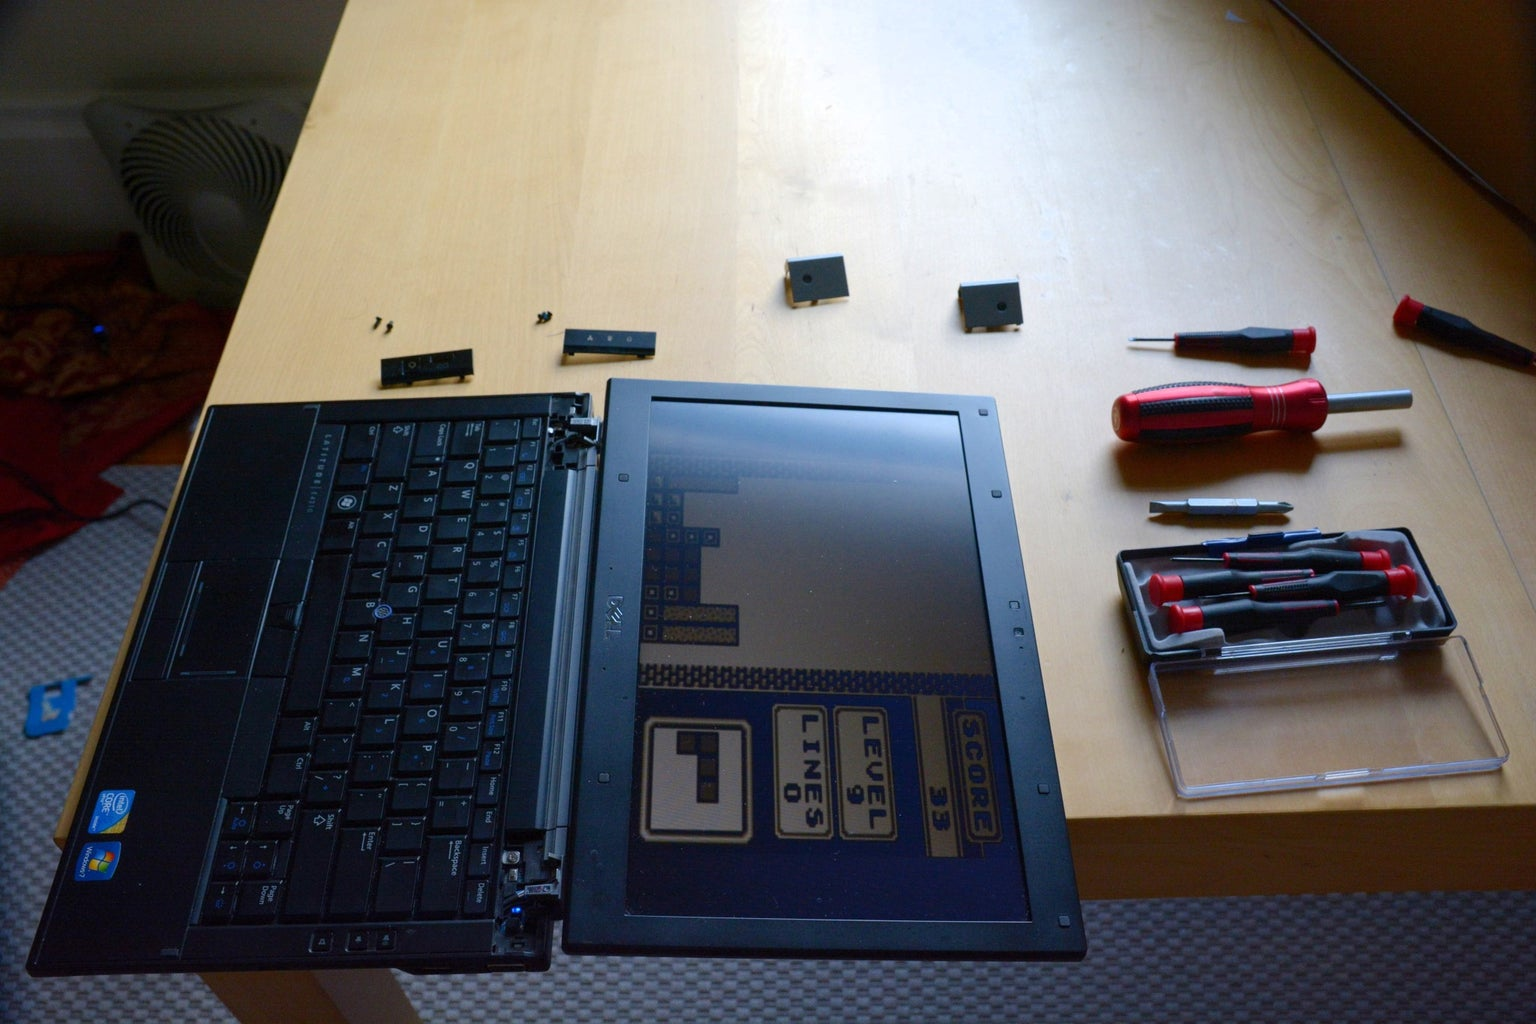 Mounting the Laptop